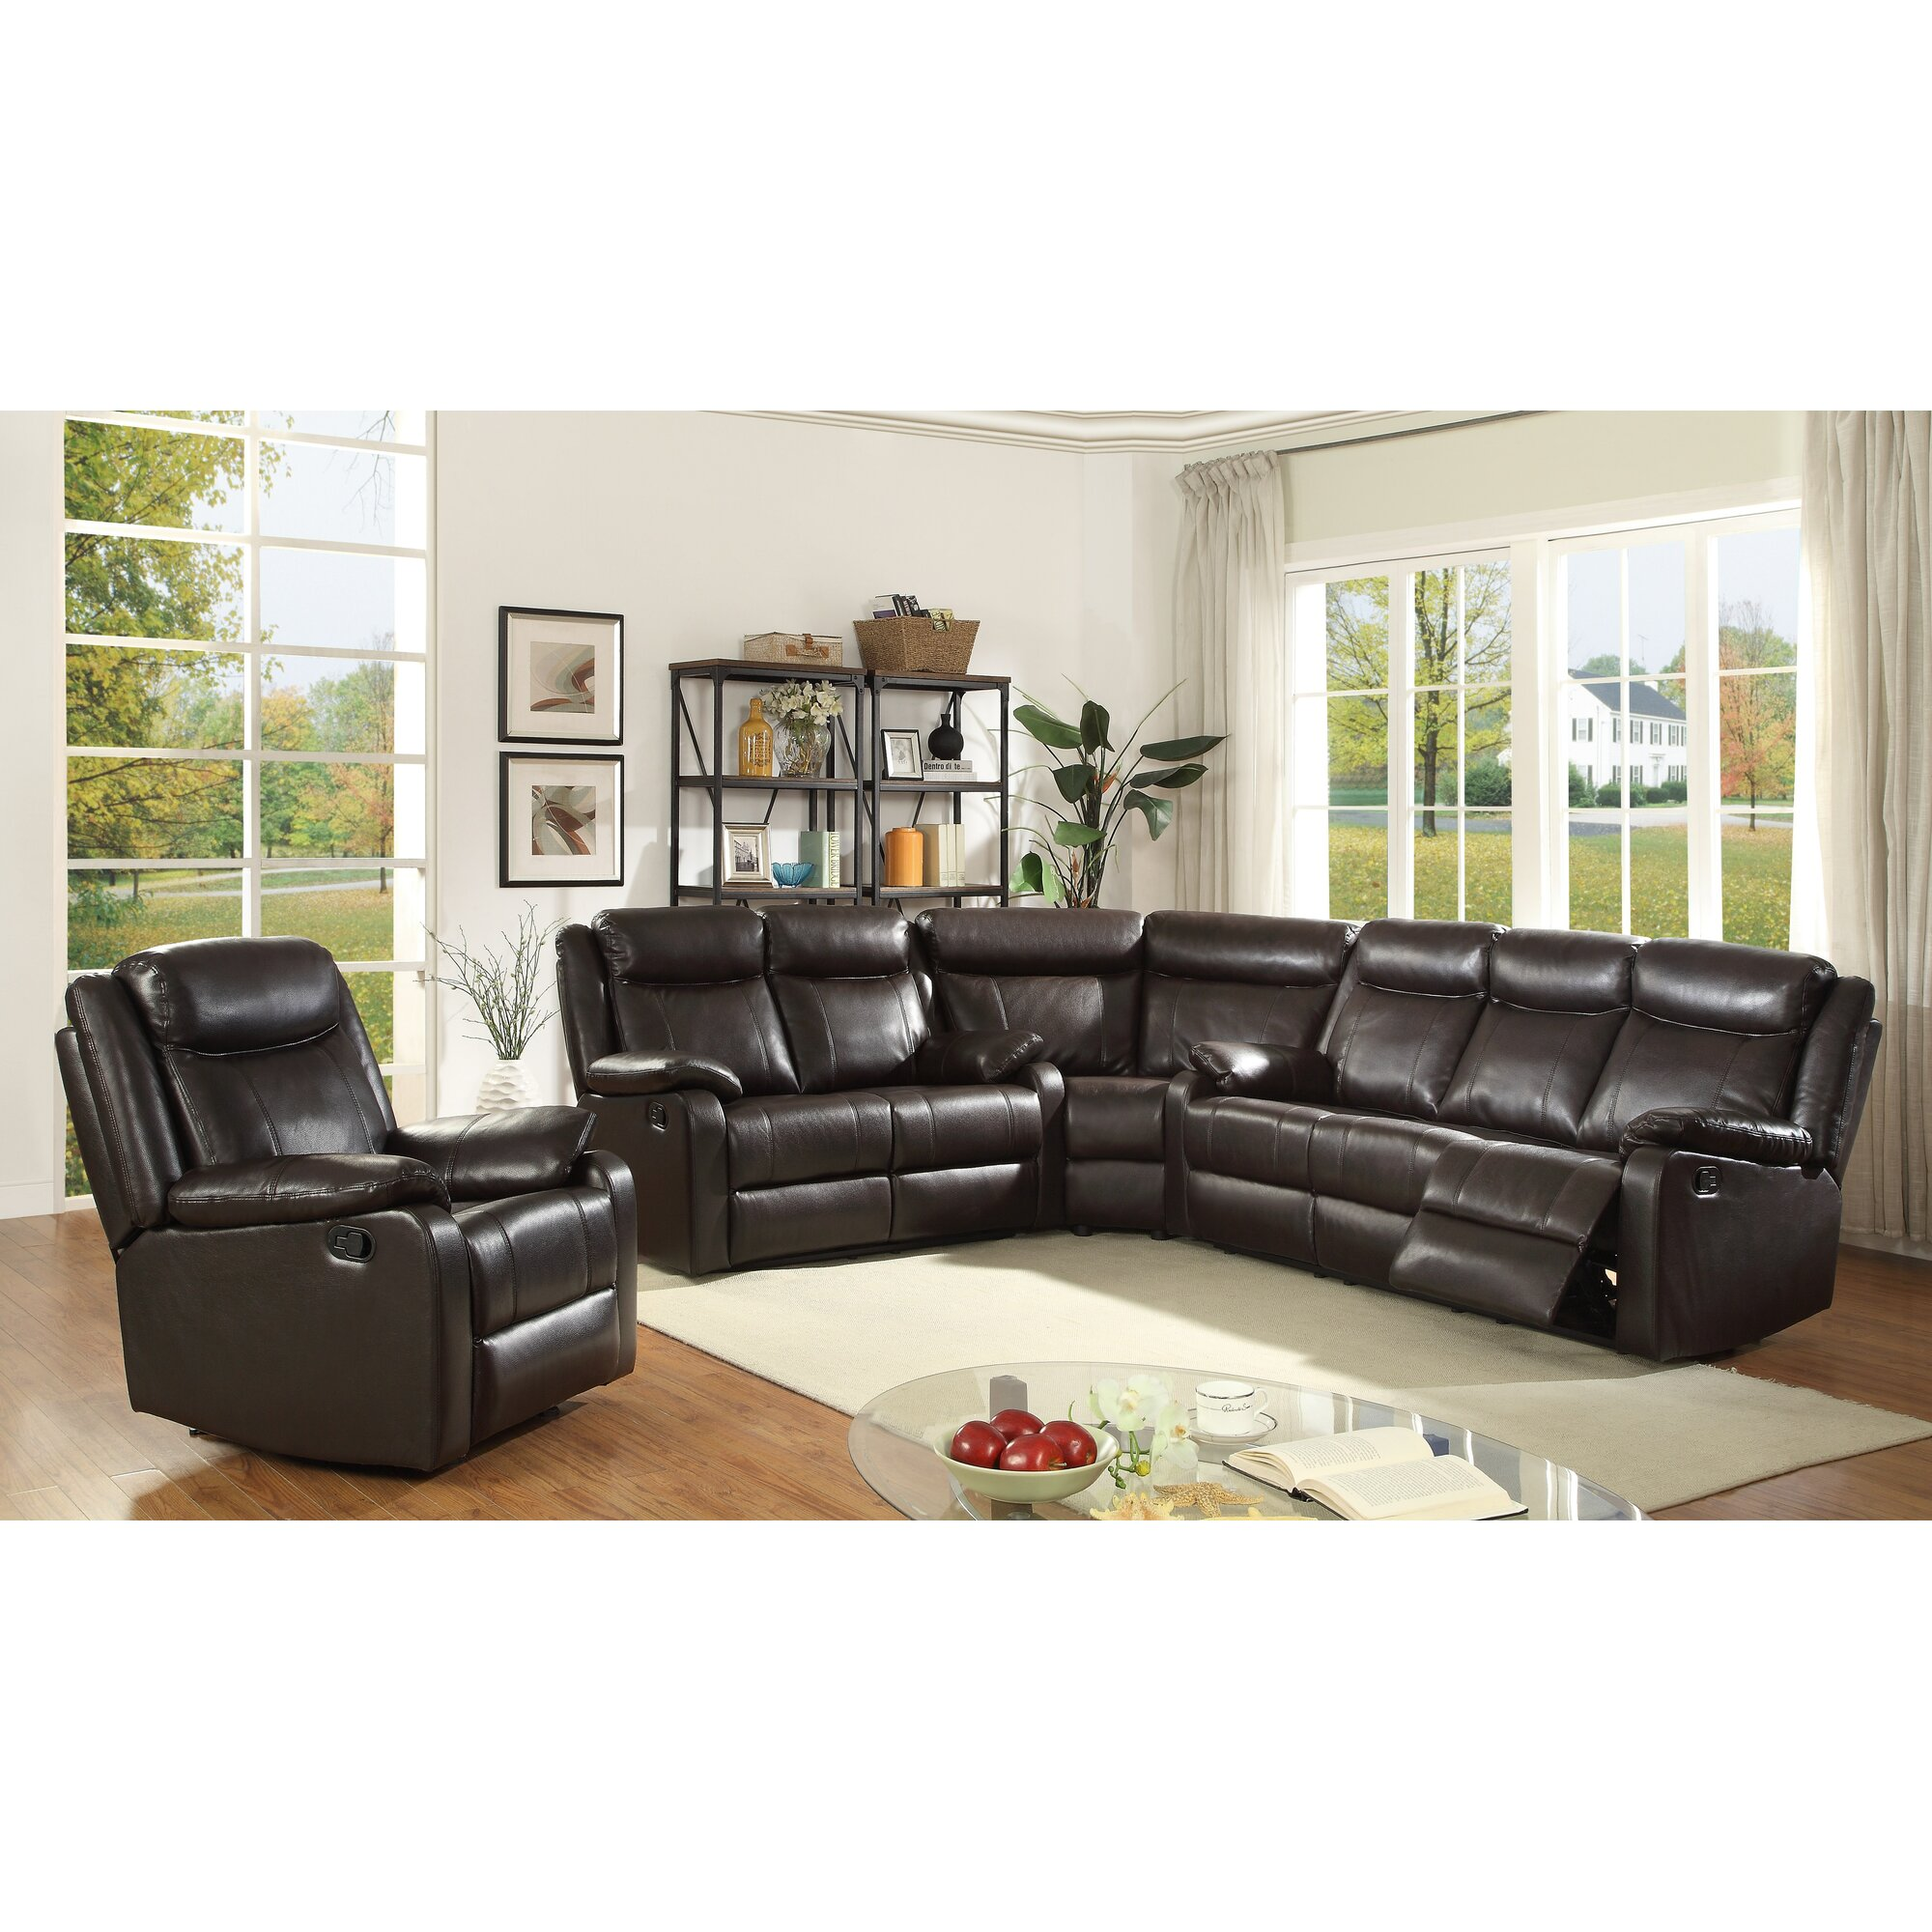 leo minor double reclining loveseat